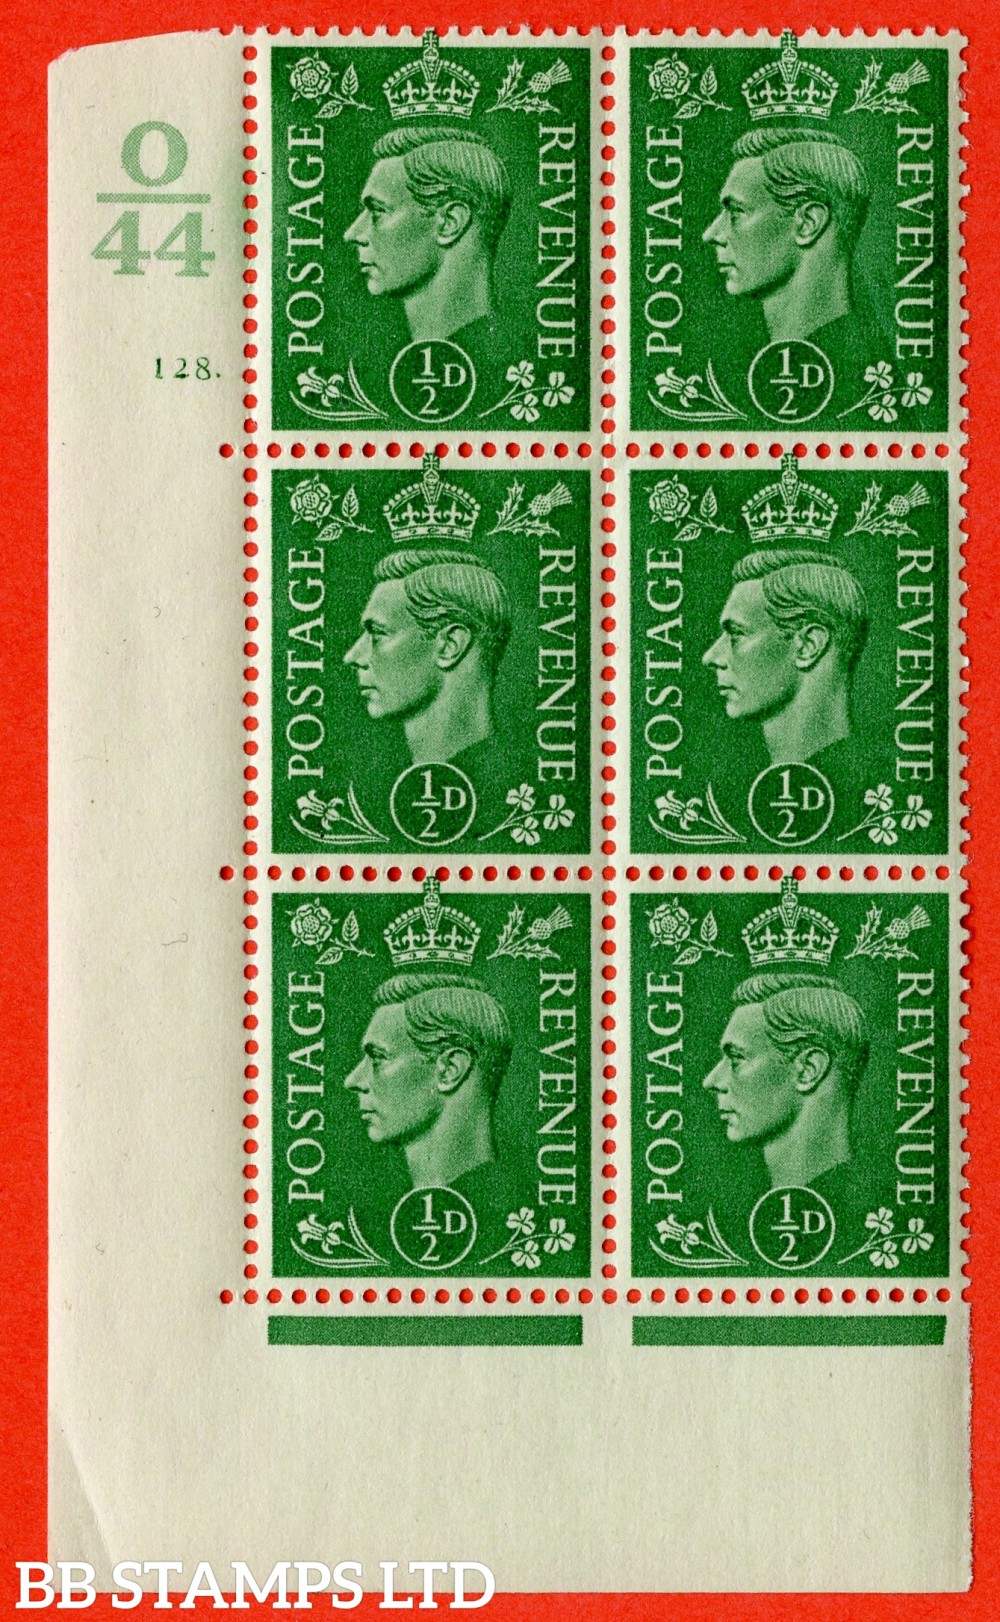 "SG. 485. Q2. ½d Pale Green. A very fine lightly mounted mint "" Control O44 cylinder 128 dot "" block of 6 with perf type 5 E/I with marginal rule. Small crease."